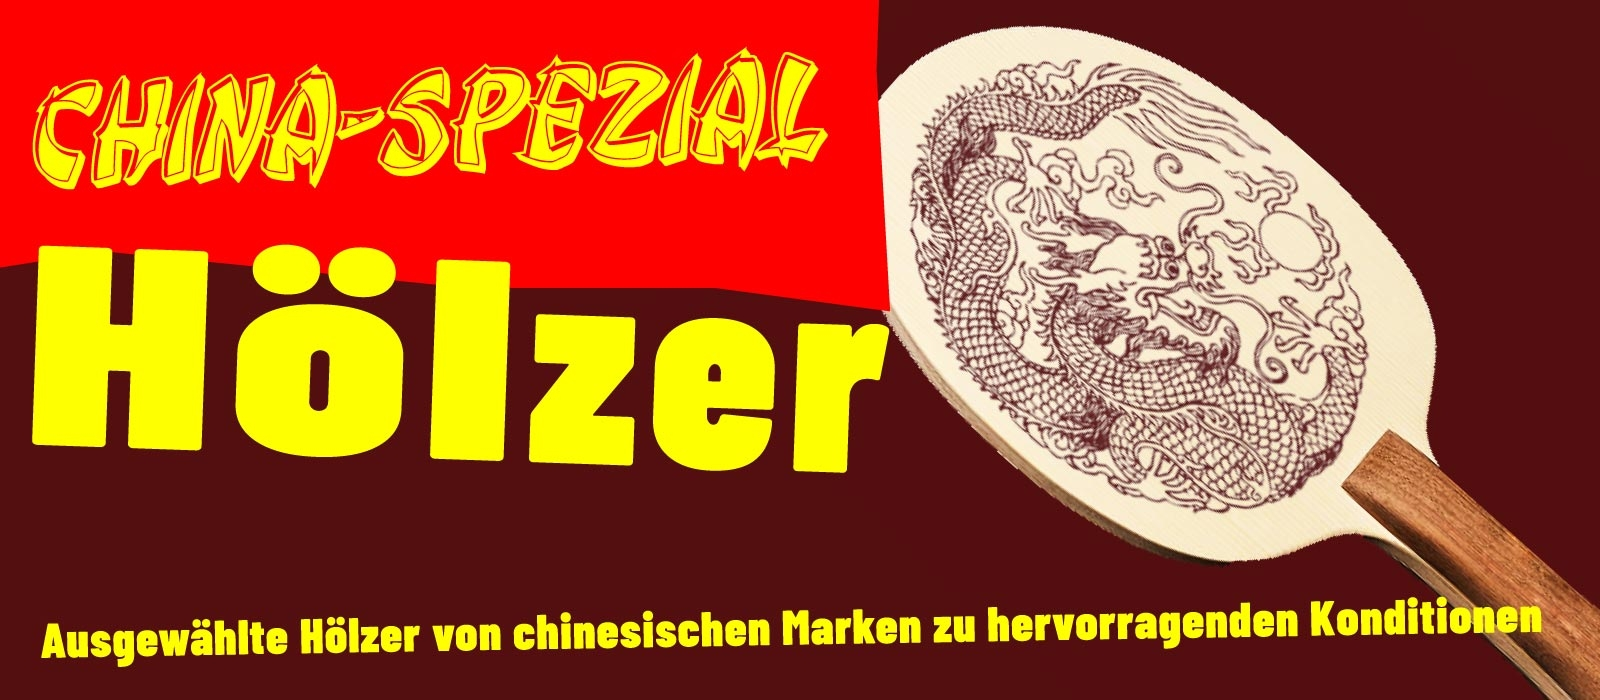 China-Spezial Hölzer - All - Off